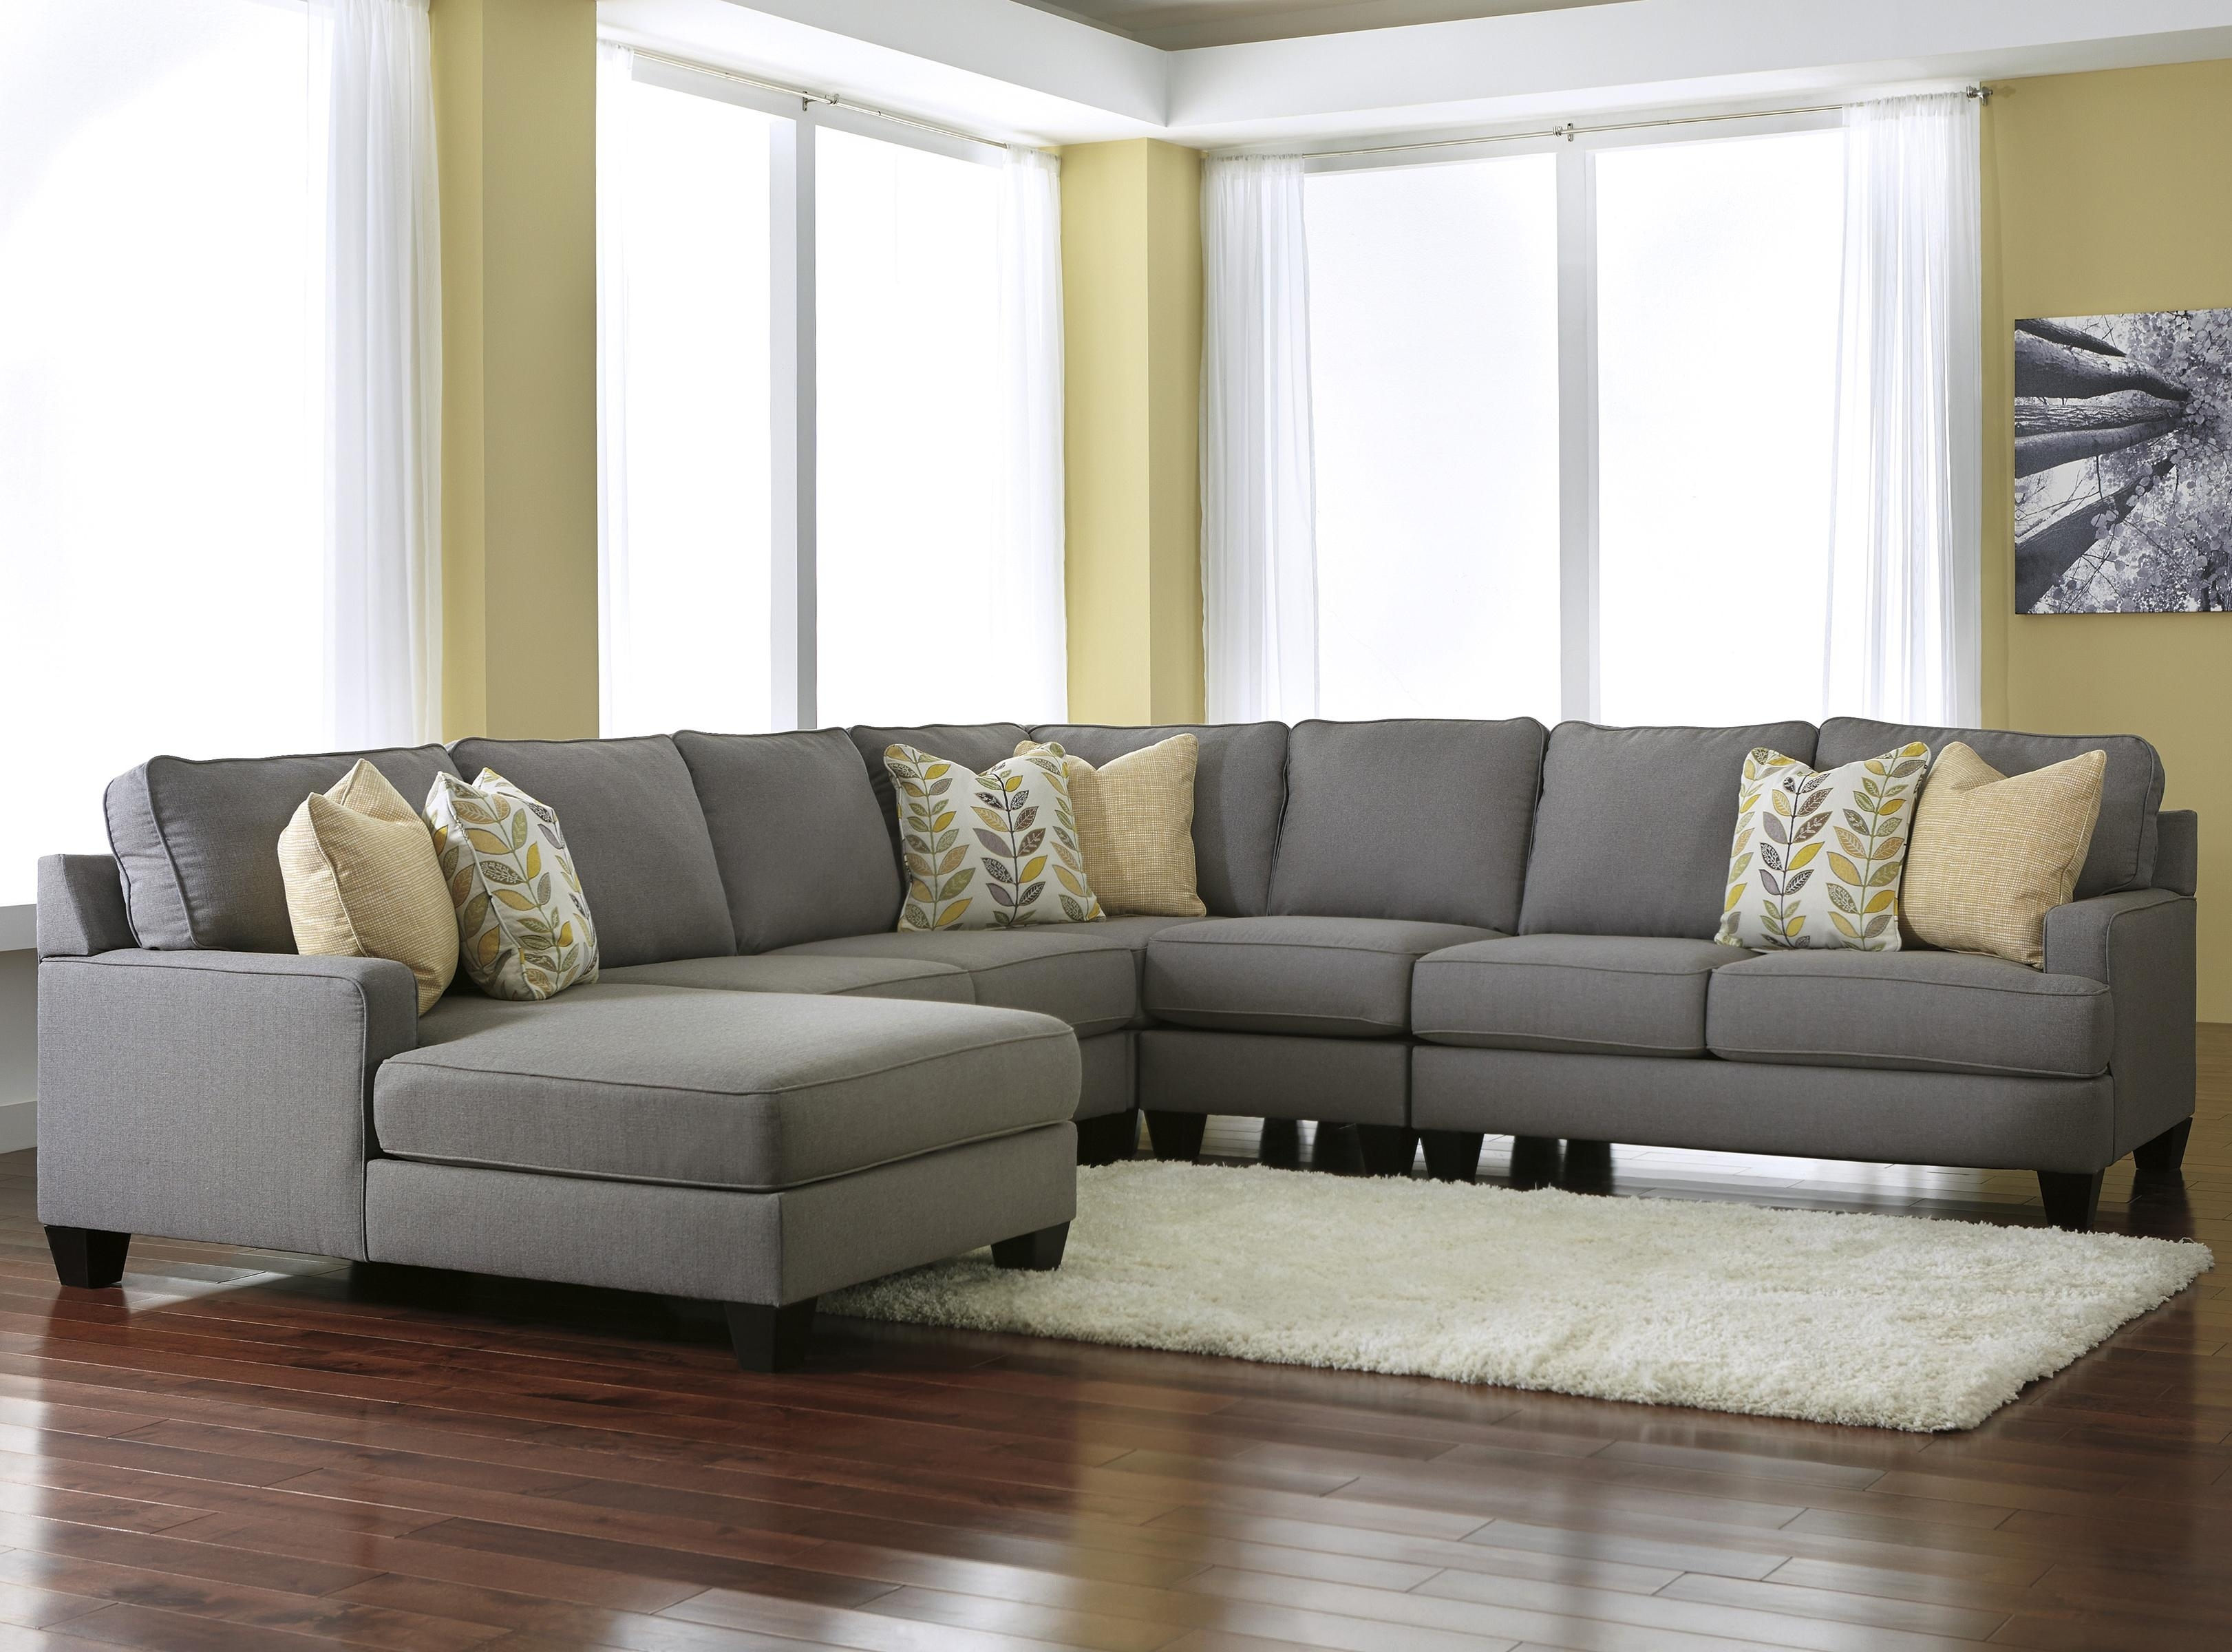 Signature Designashley Chamberly – Alloy Modern 5 Piece In Mn Sectional Sofas (View 4 of 10)